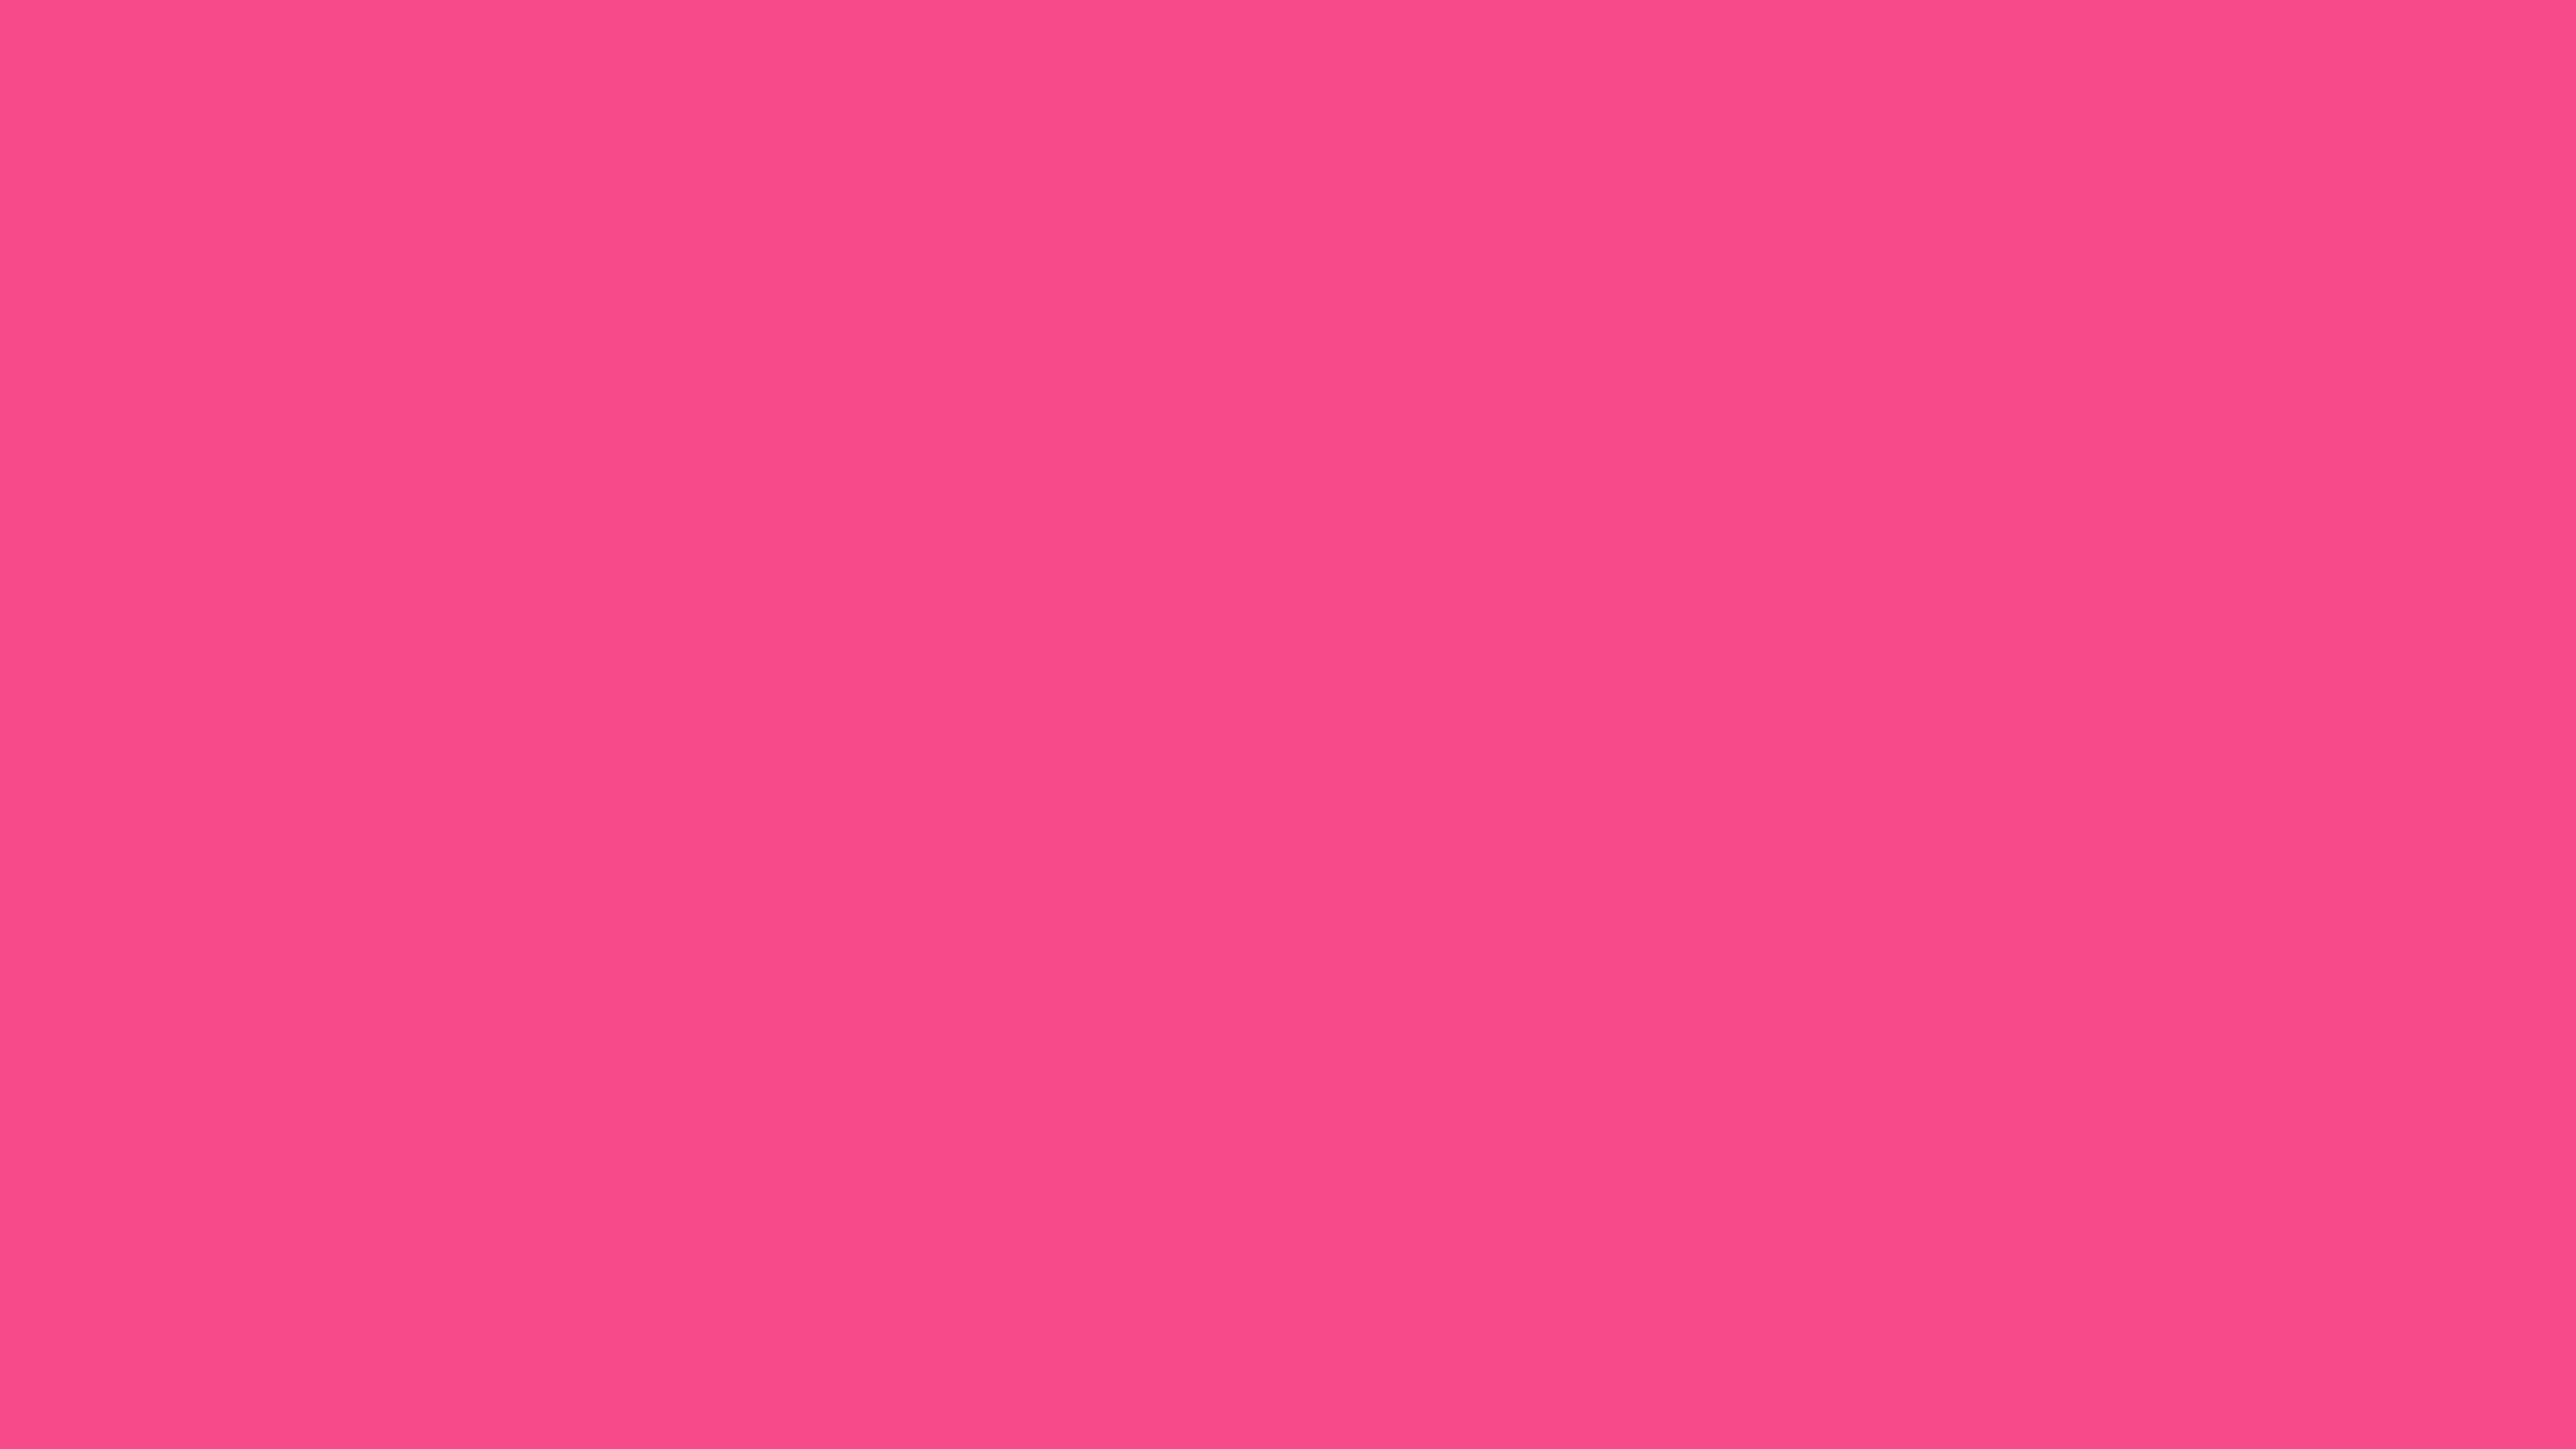 7680x4320 French Rose Solid Color Background